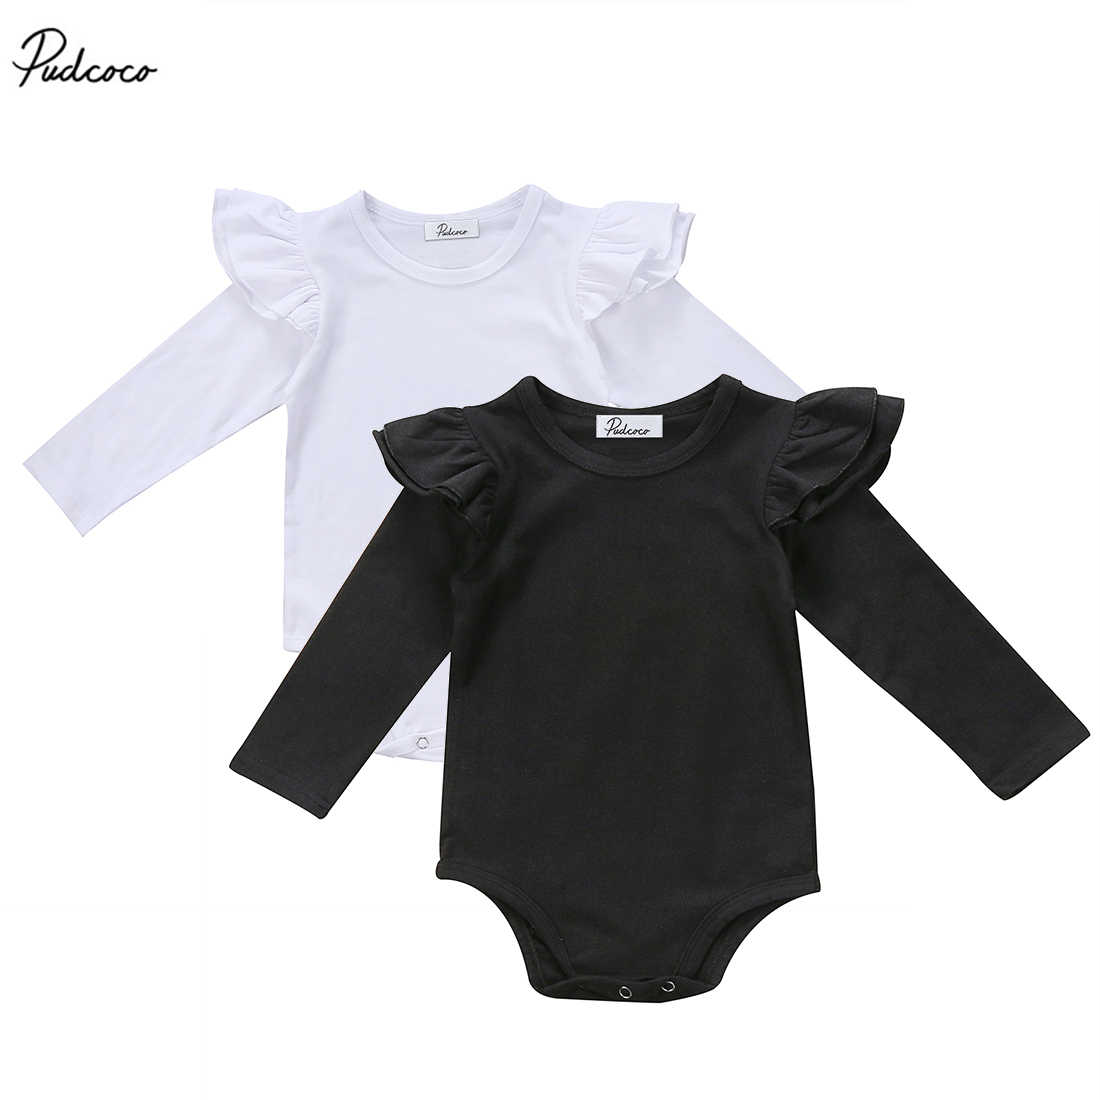 Cute Newborn Infant Baby Girls Long Sleeve Ruffle Romper Solid Jumpsuit Outfit Clothes